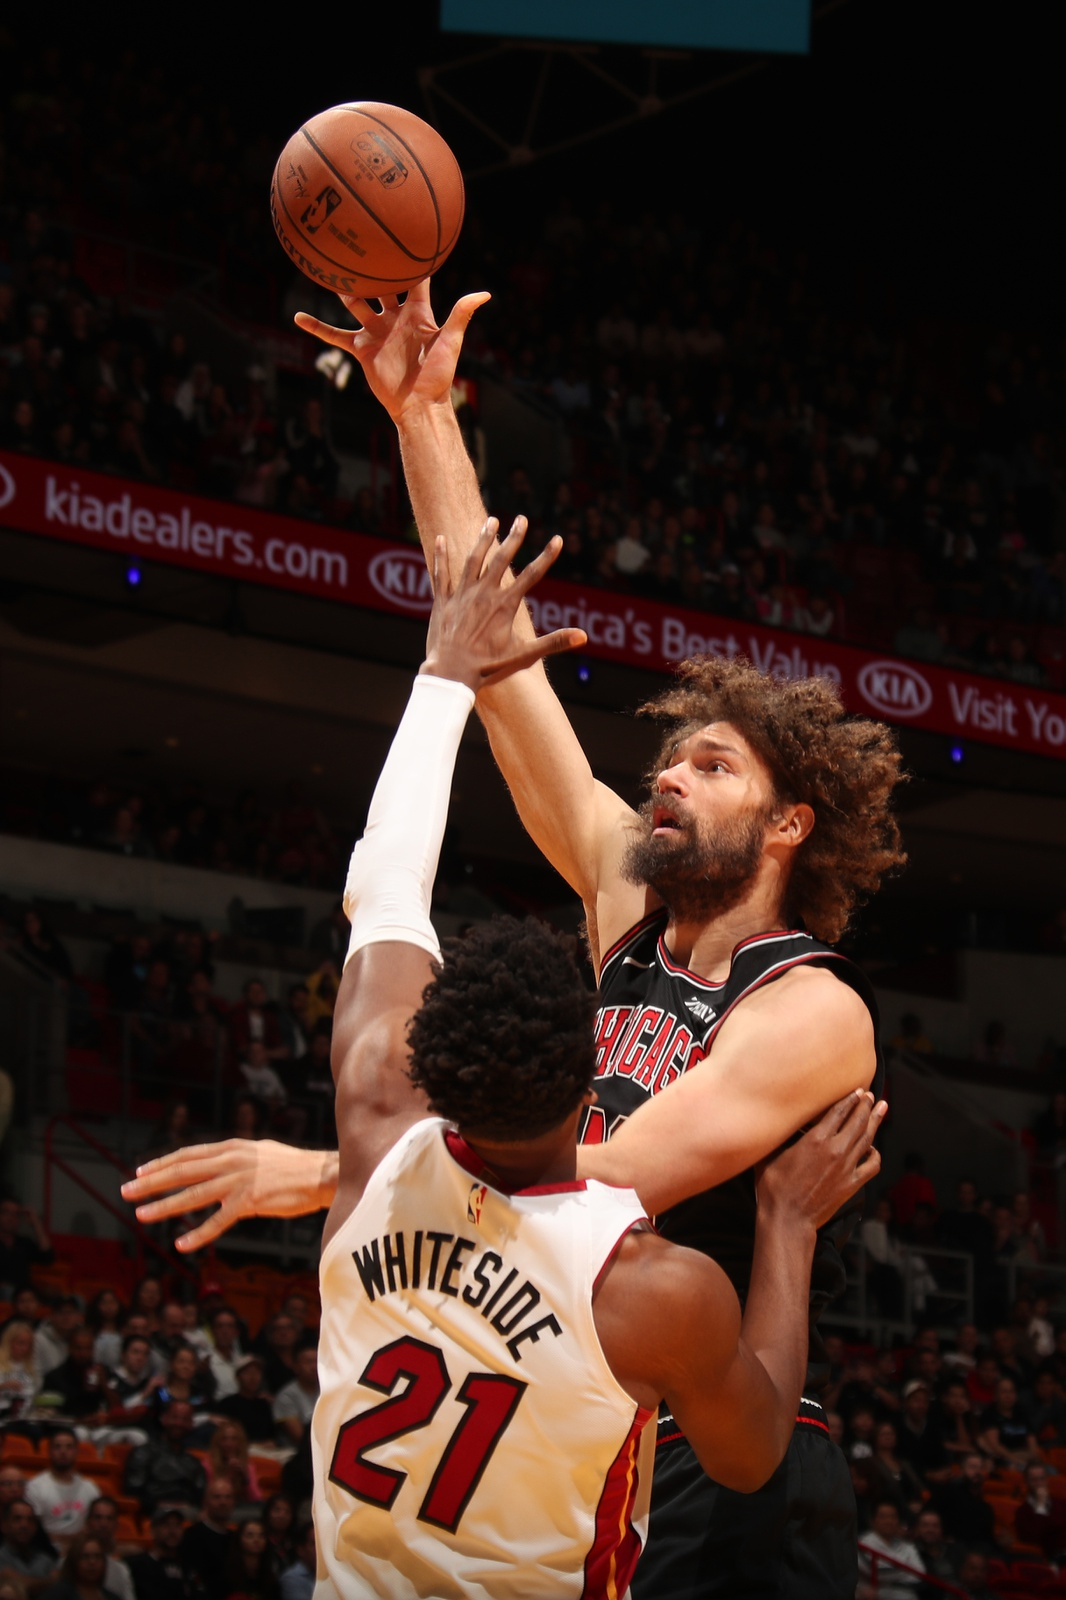 Robin Lopez #42 of the Chicago Bulls shoots the ball against the Miami Heat on January 30, 2019 at American Airlines Arena in Miami, Florida.